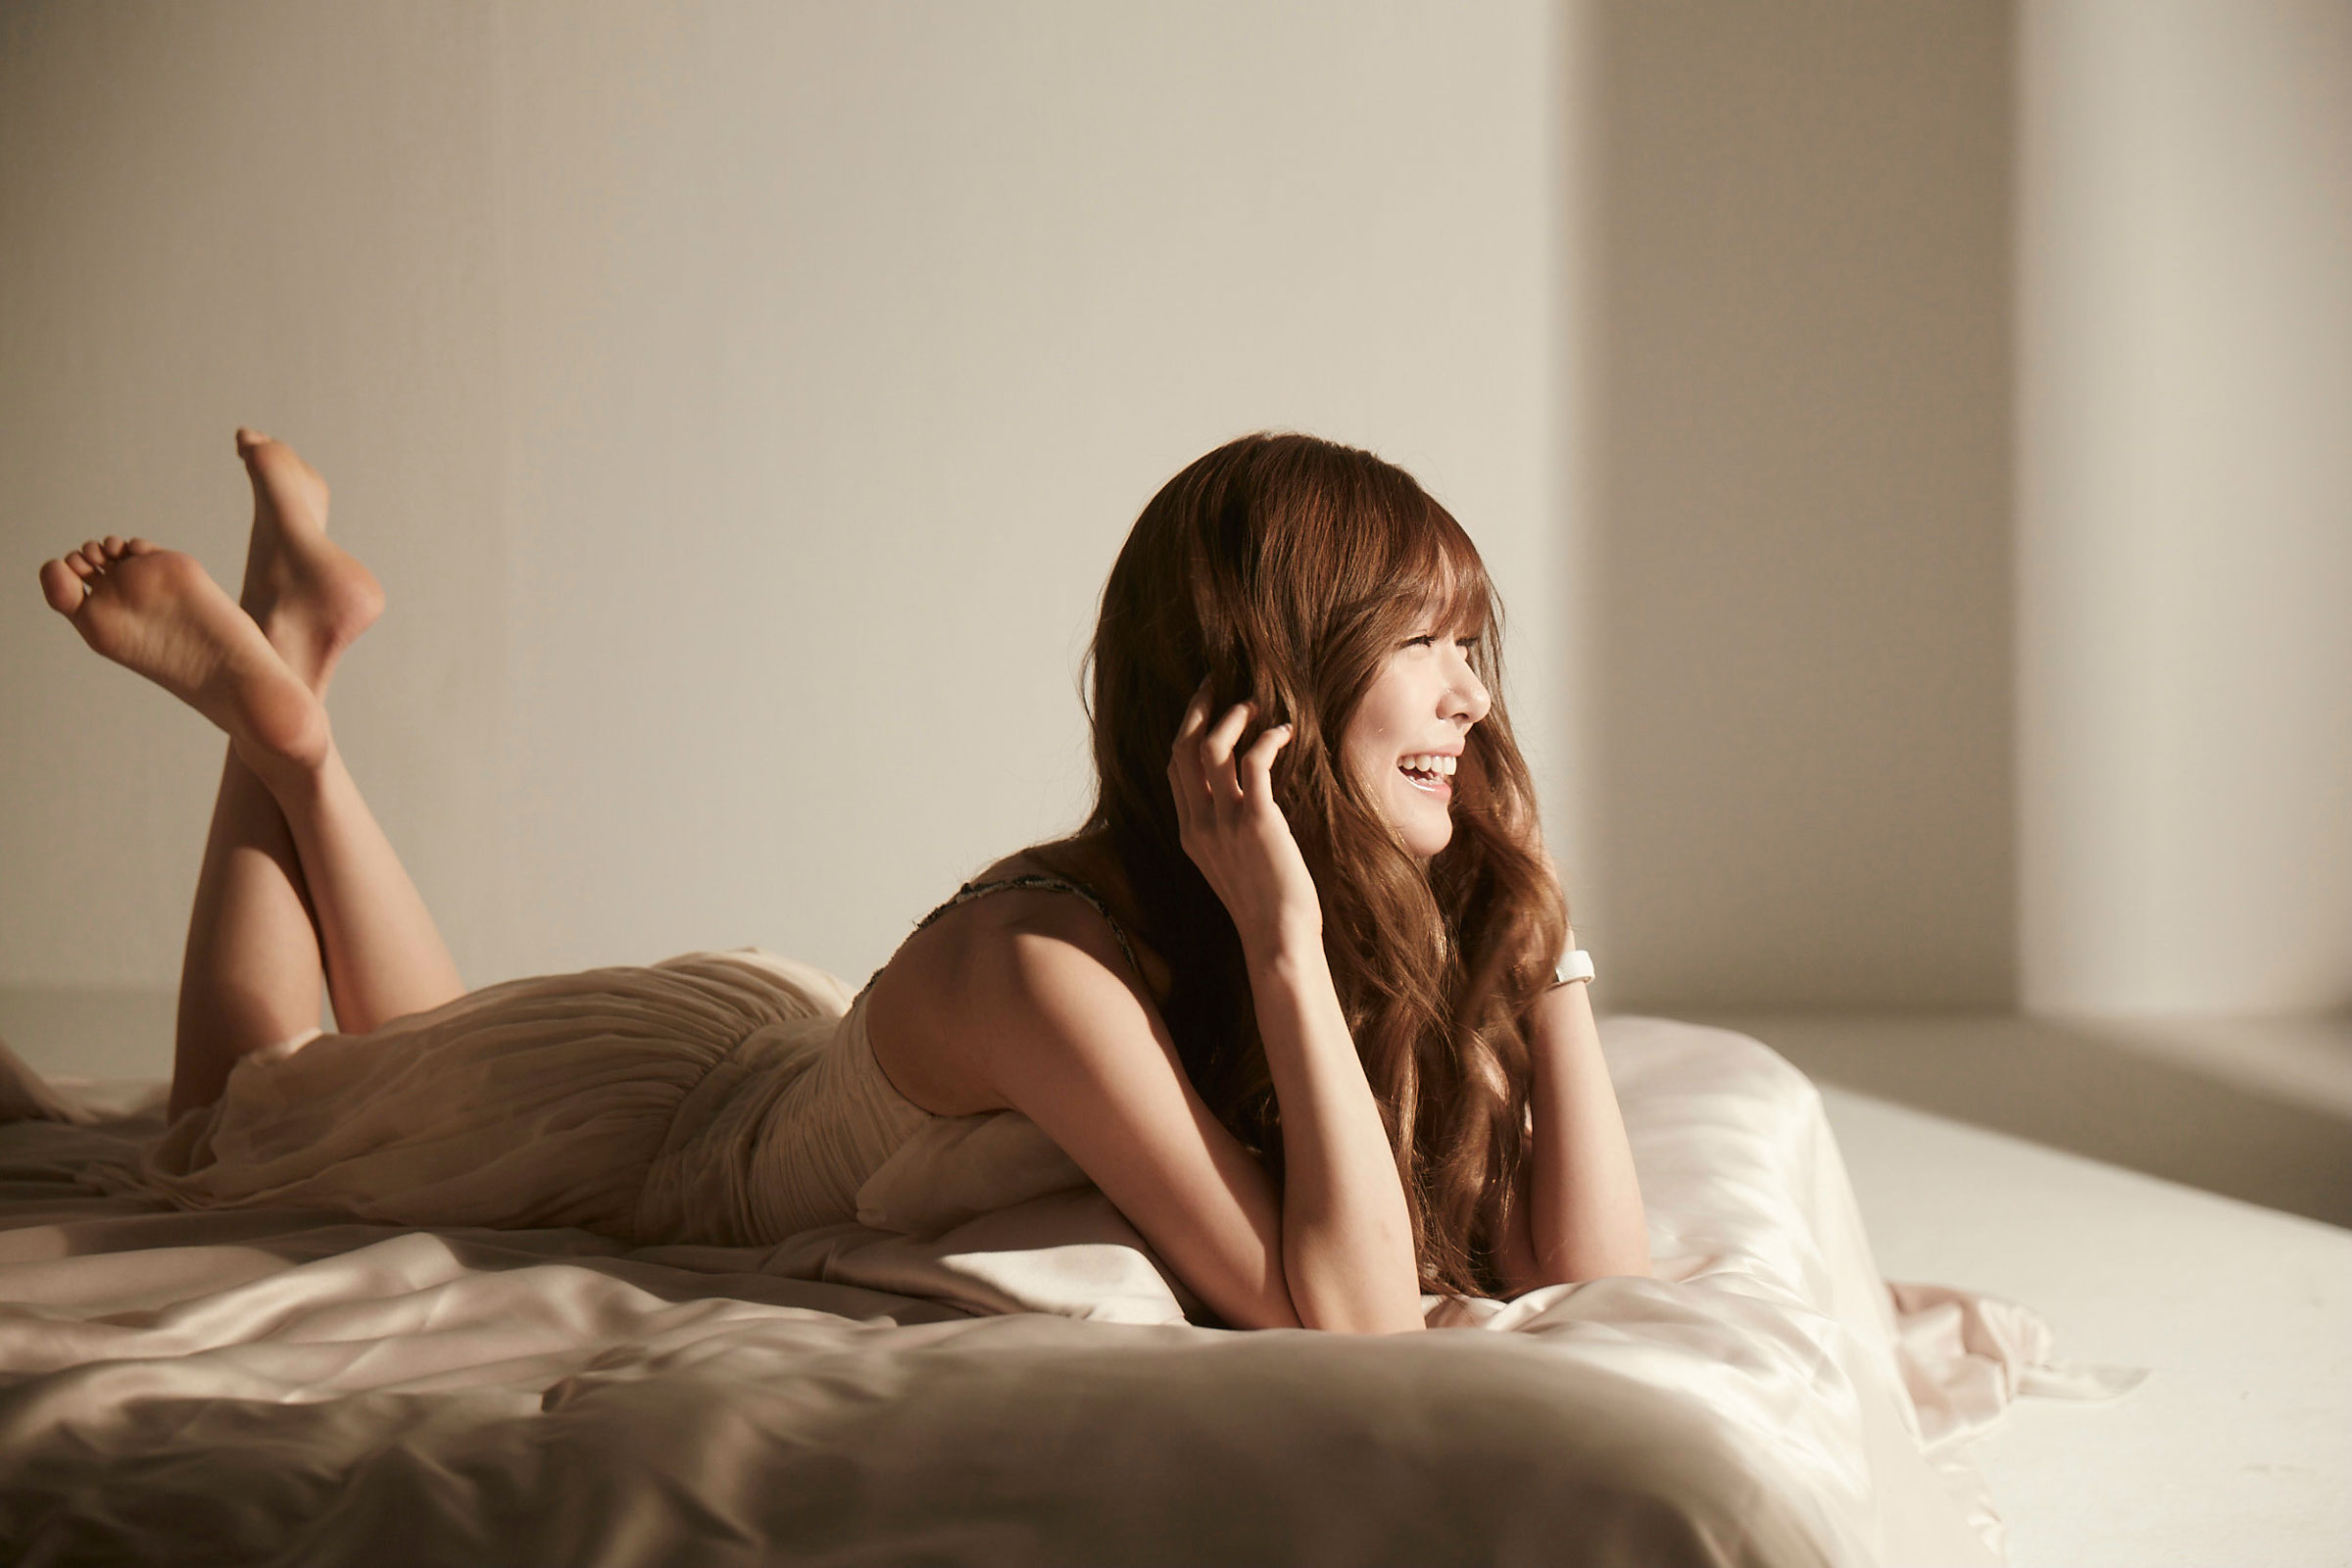 Girls Generation Tiffany shooting Casio commercial